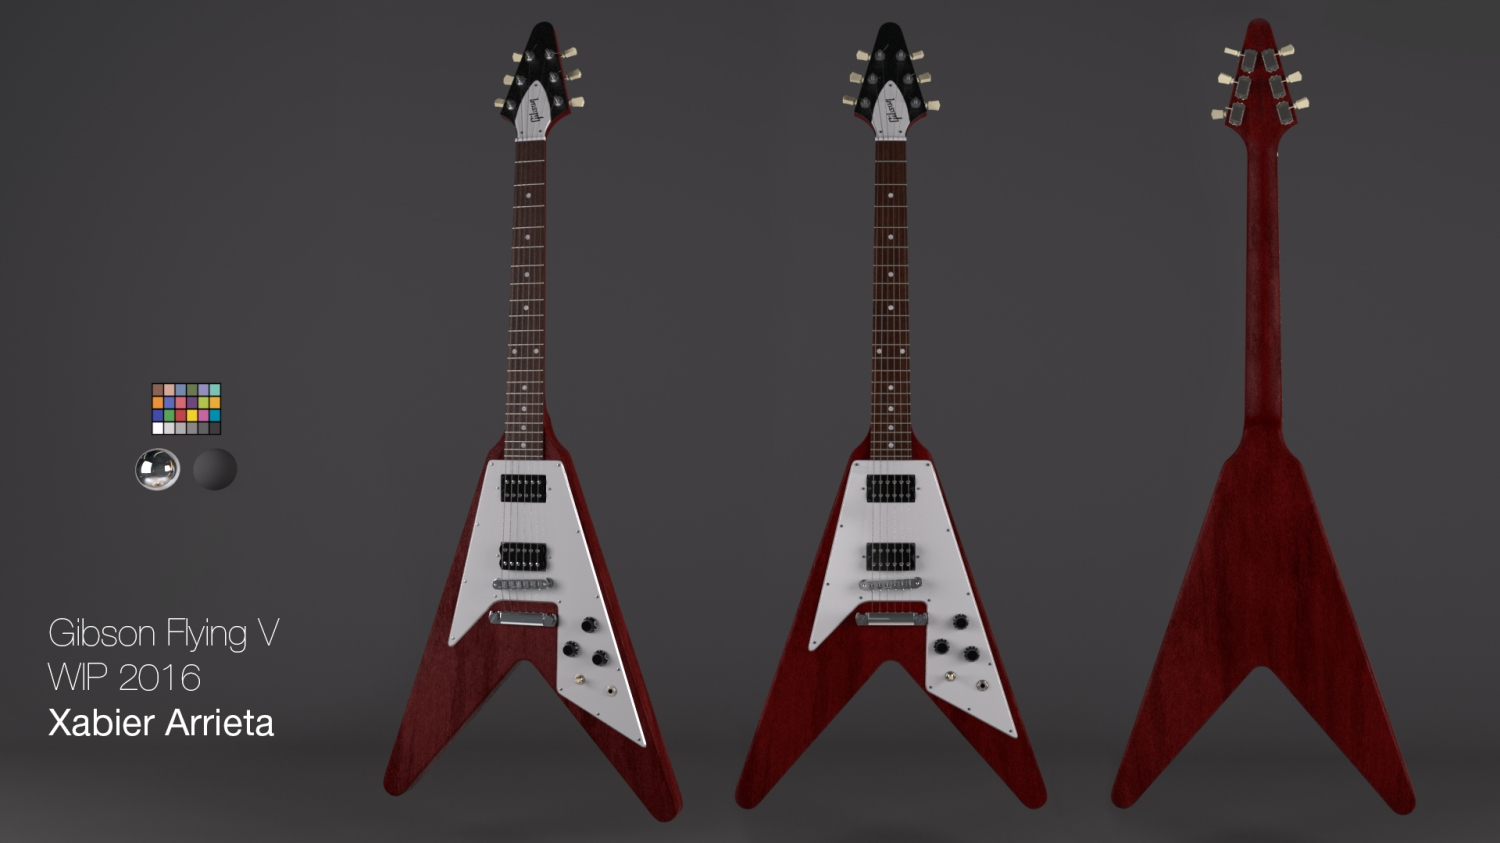 Gibson Flying V texturing process